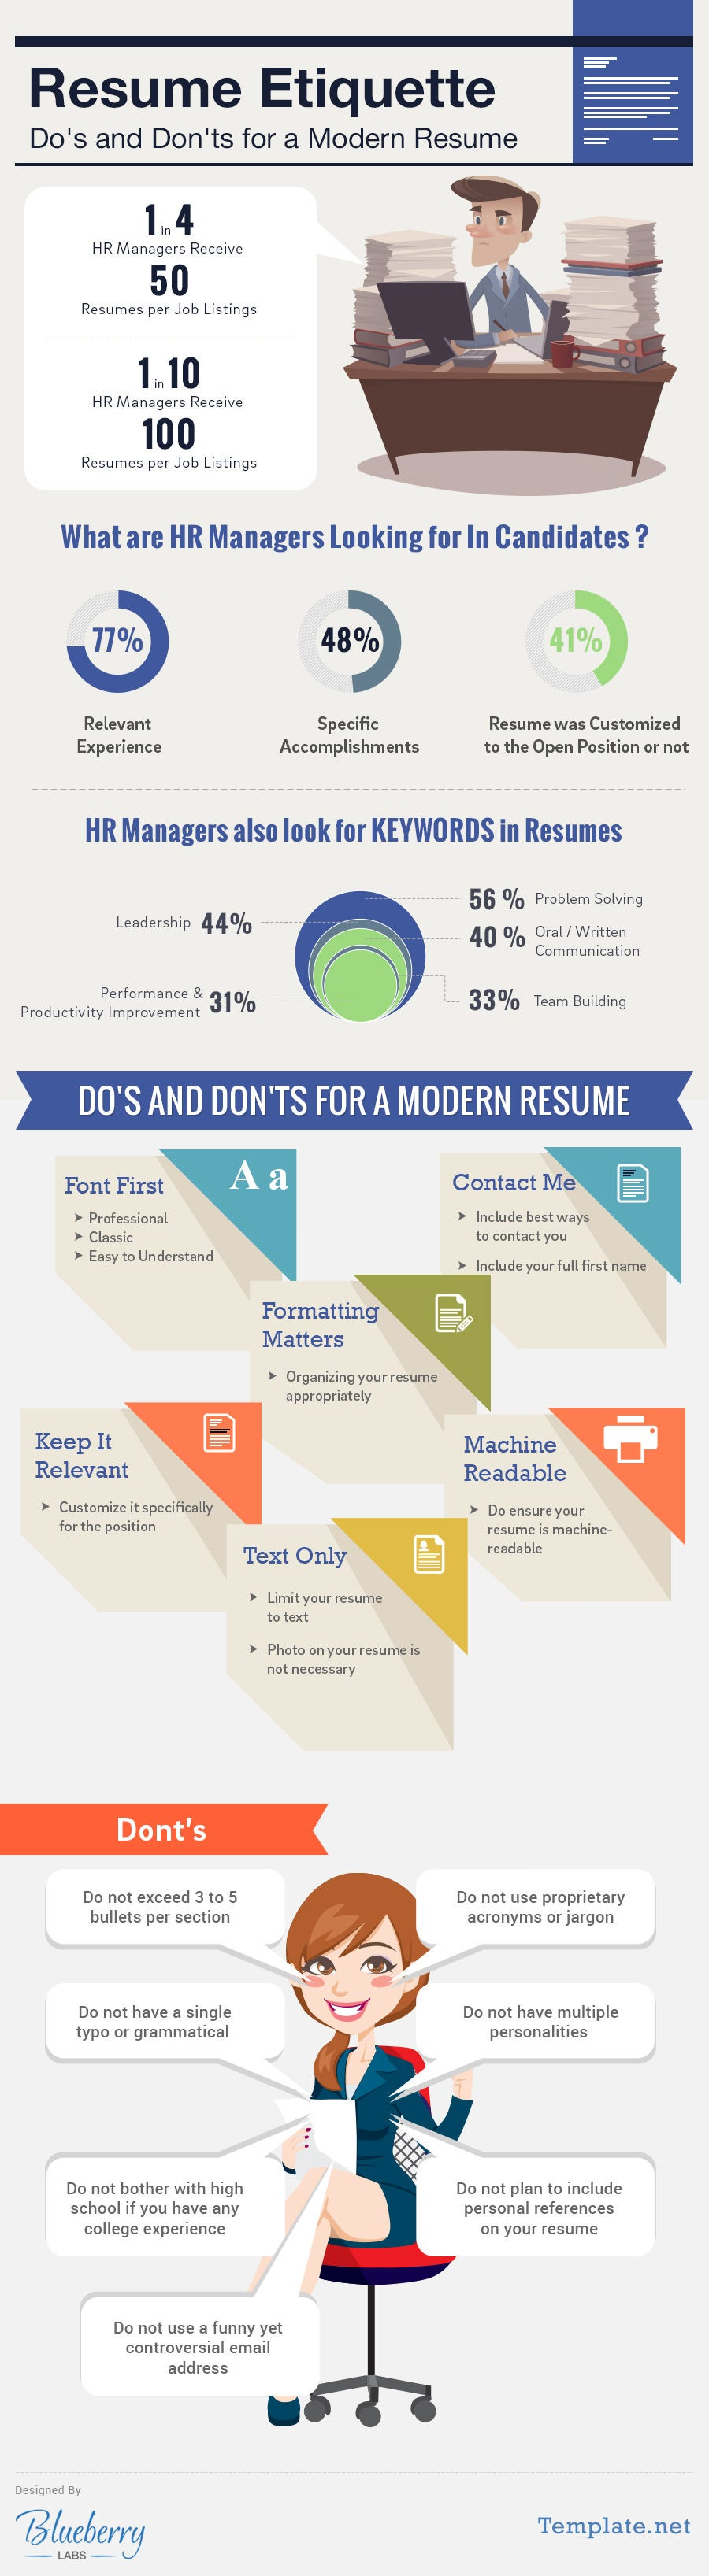 resume etiquette design do s don ts for a modern